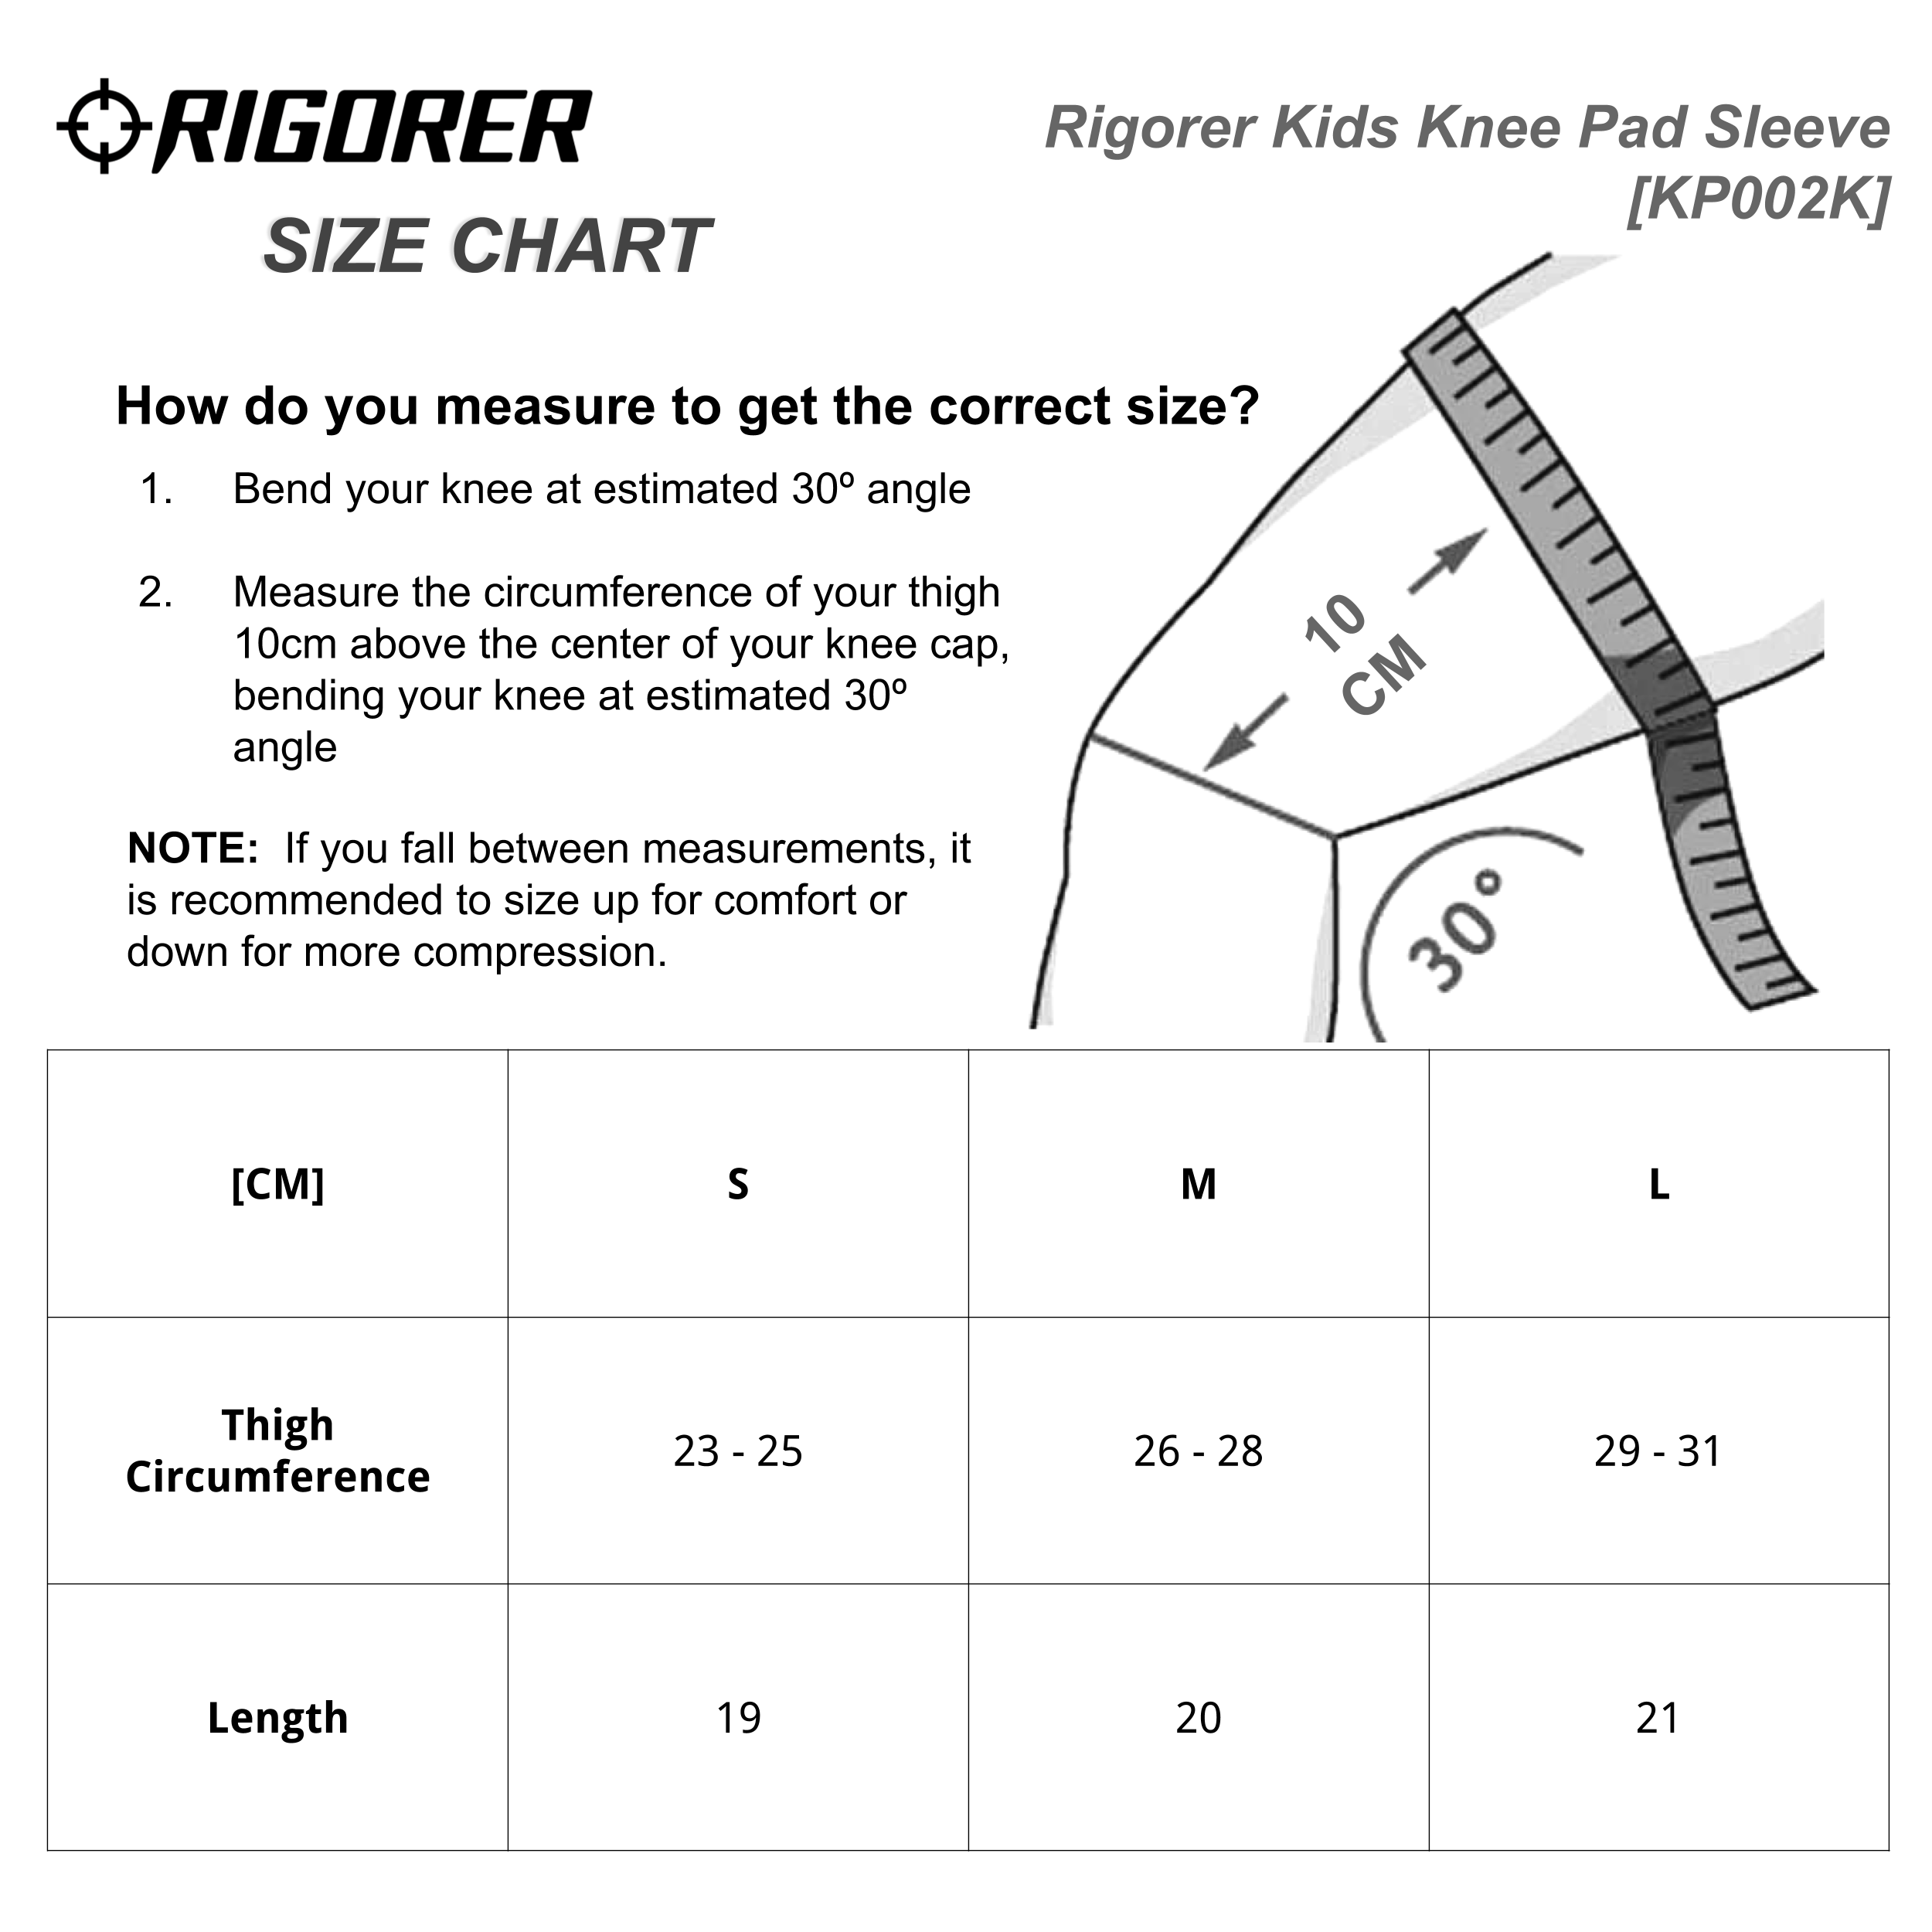 Rigorer Kids Knee Pad Sleeve [KP002K] Sizing Chart